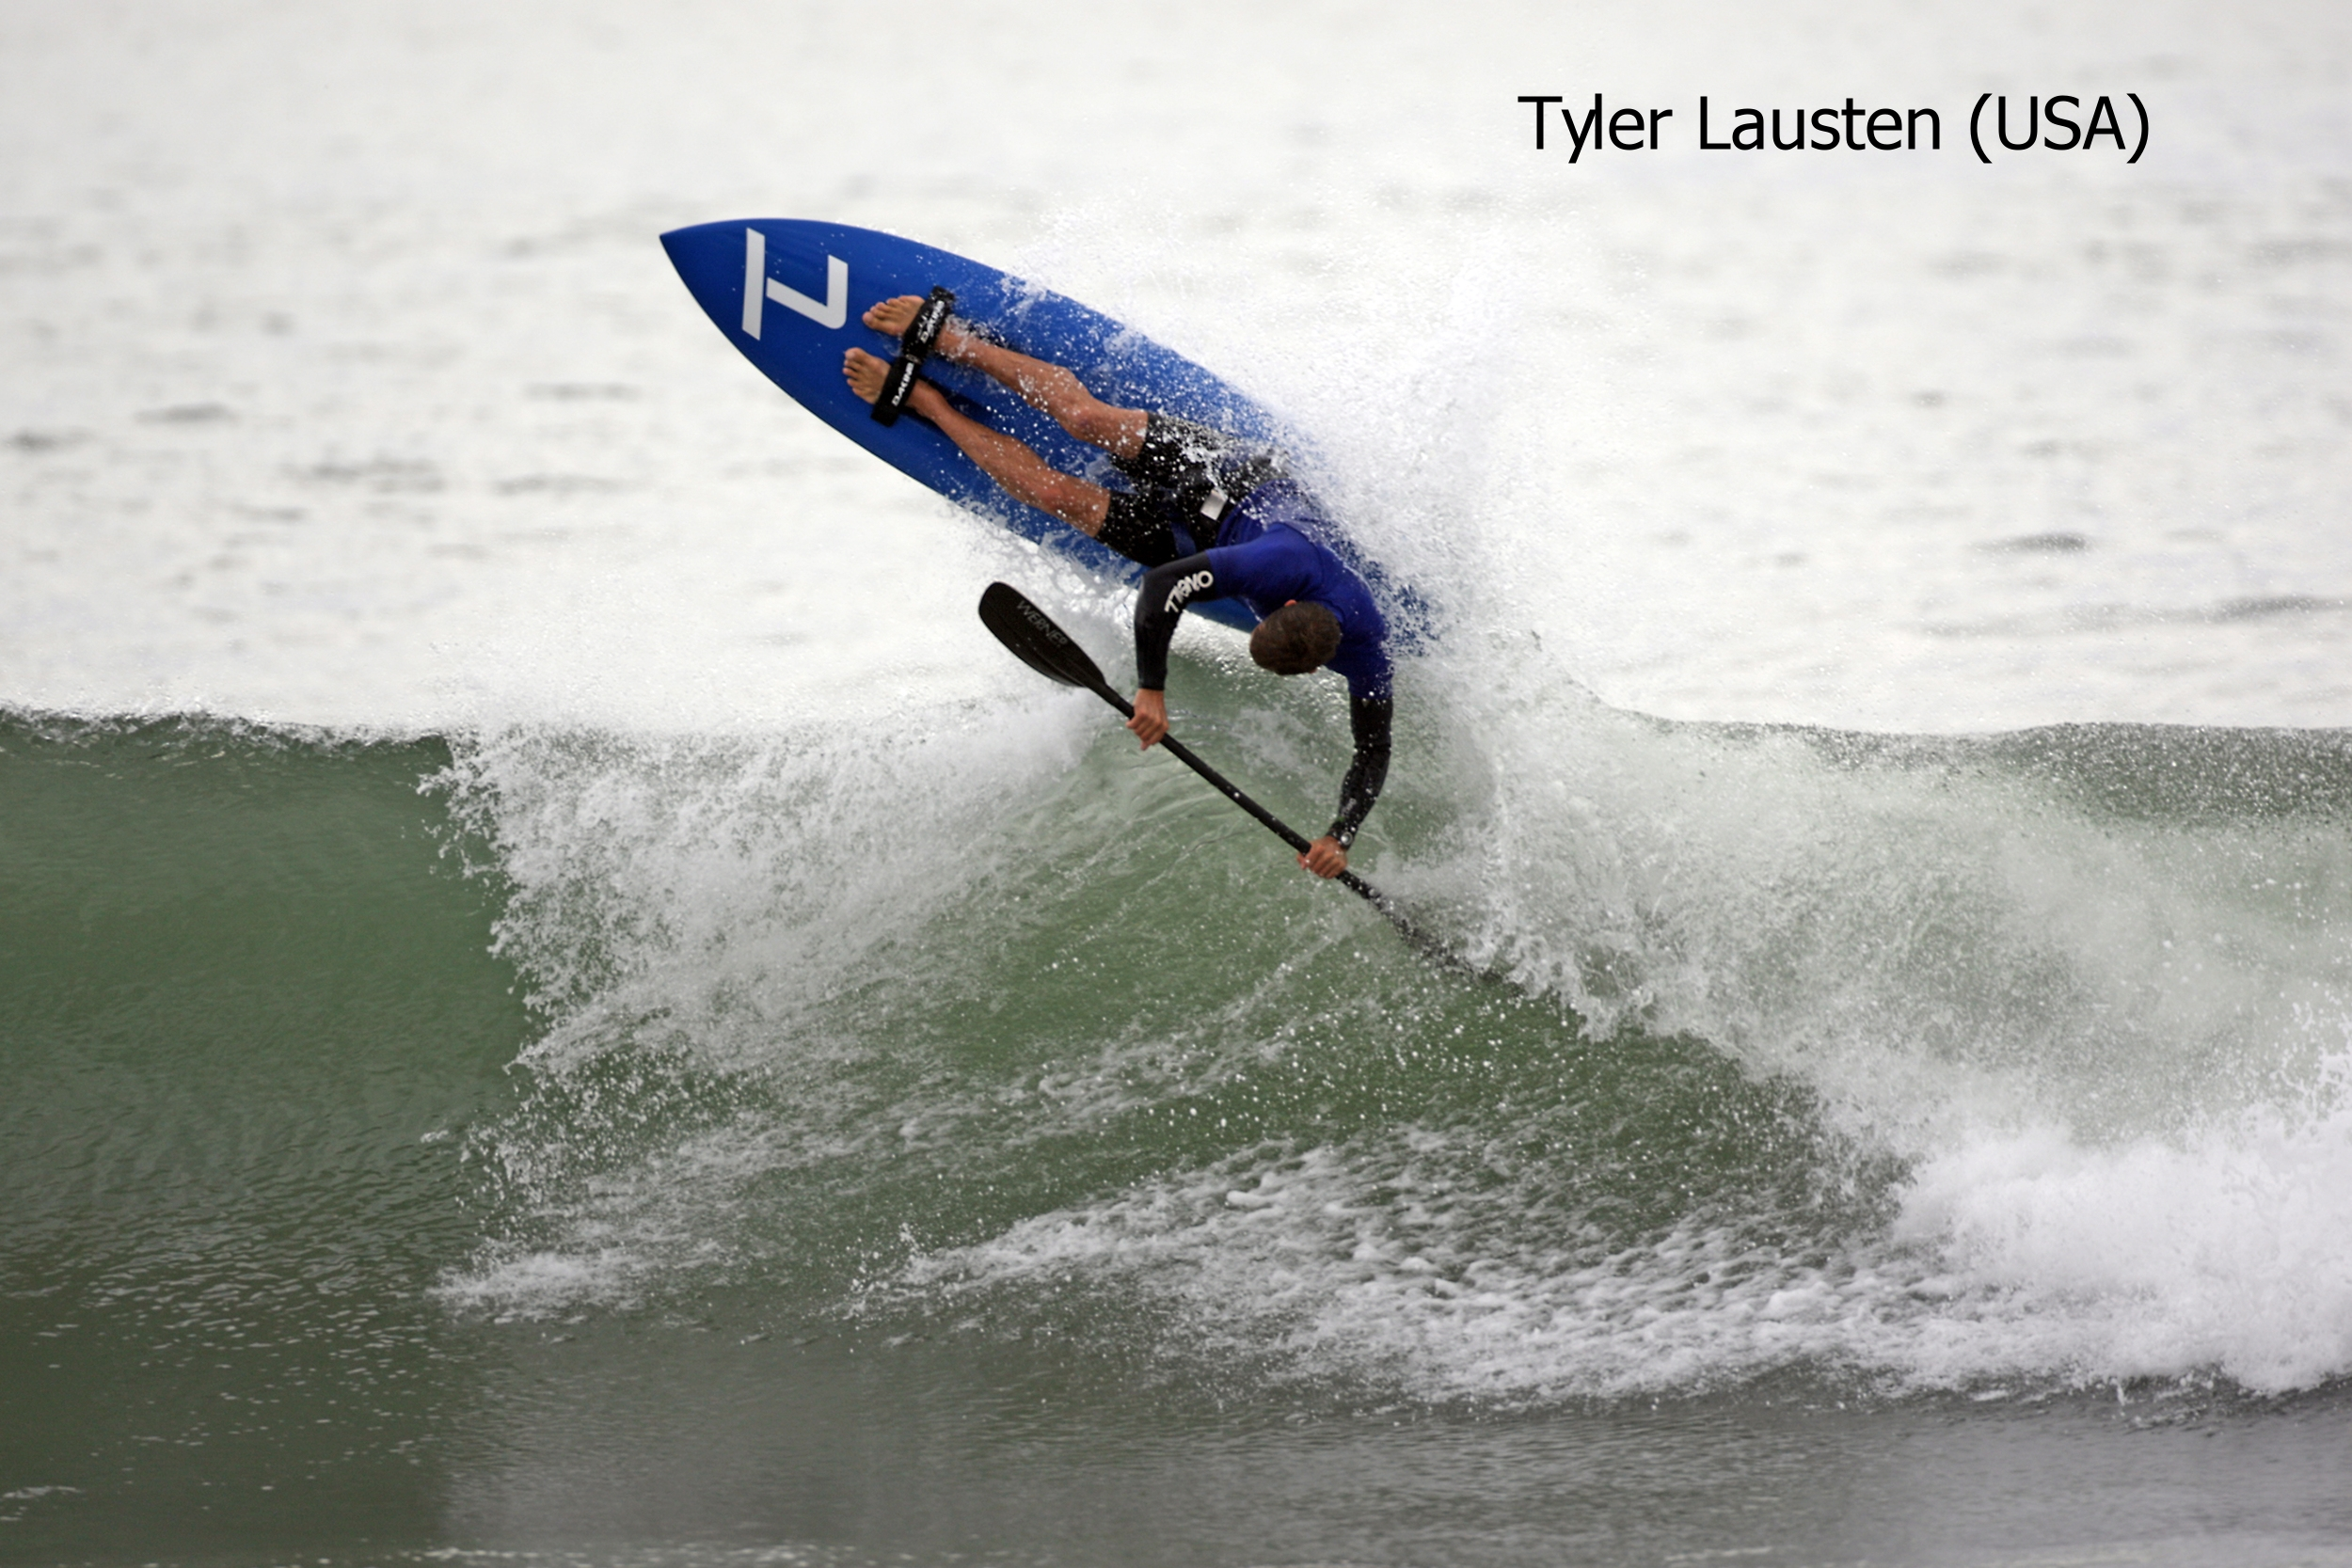 """TL"" Tyler Lausten (USA) - Showing Tyler Lausten, Owner - Santa Cruz, CA, USA - click on the picture to go to Tyler Lausten website - Photo Copyright Dominick Lemarie Photography"